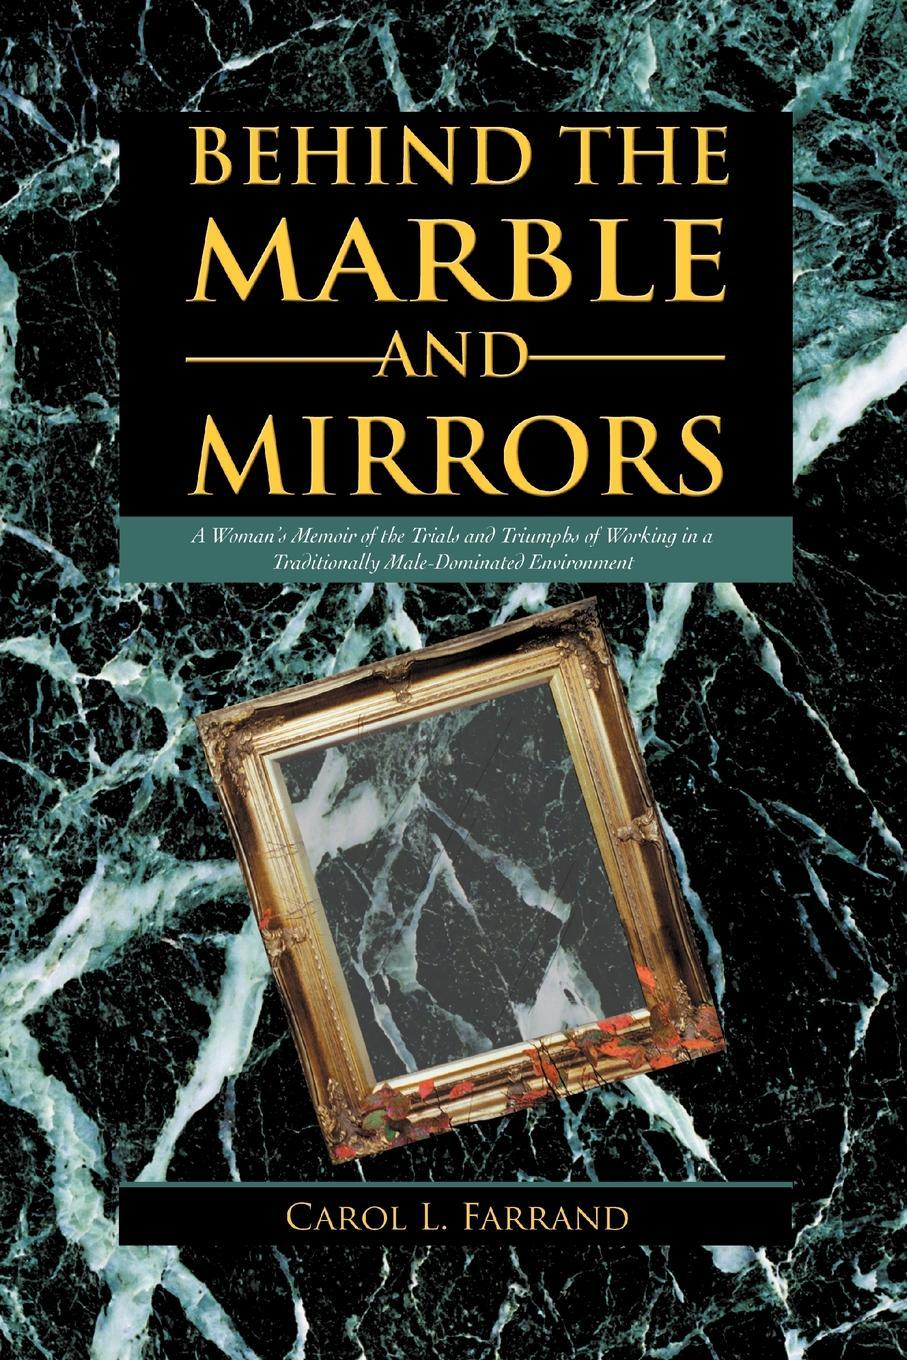 Behind the Marble and Mirrors: A Woman's Memoir of the Trials and Triumphs of Working in a Traditionally Male-Dominated Environment